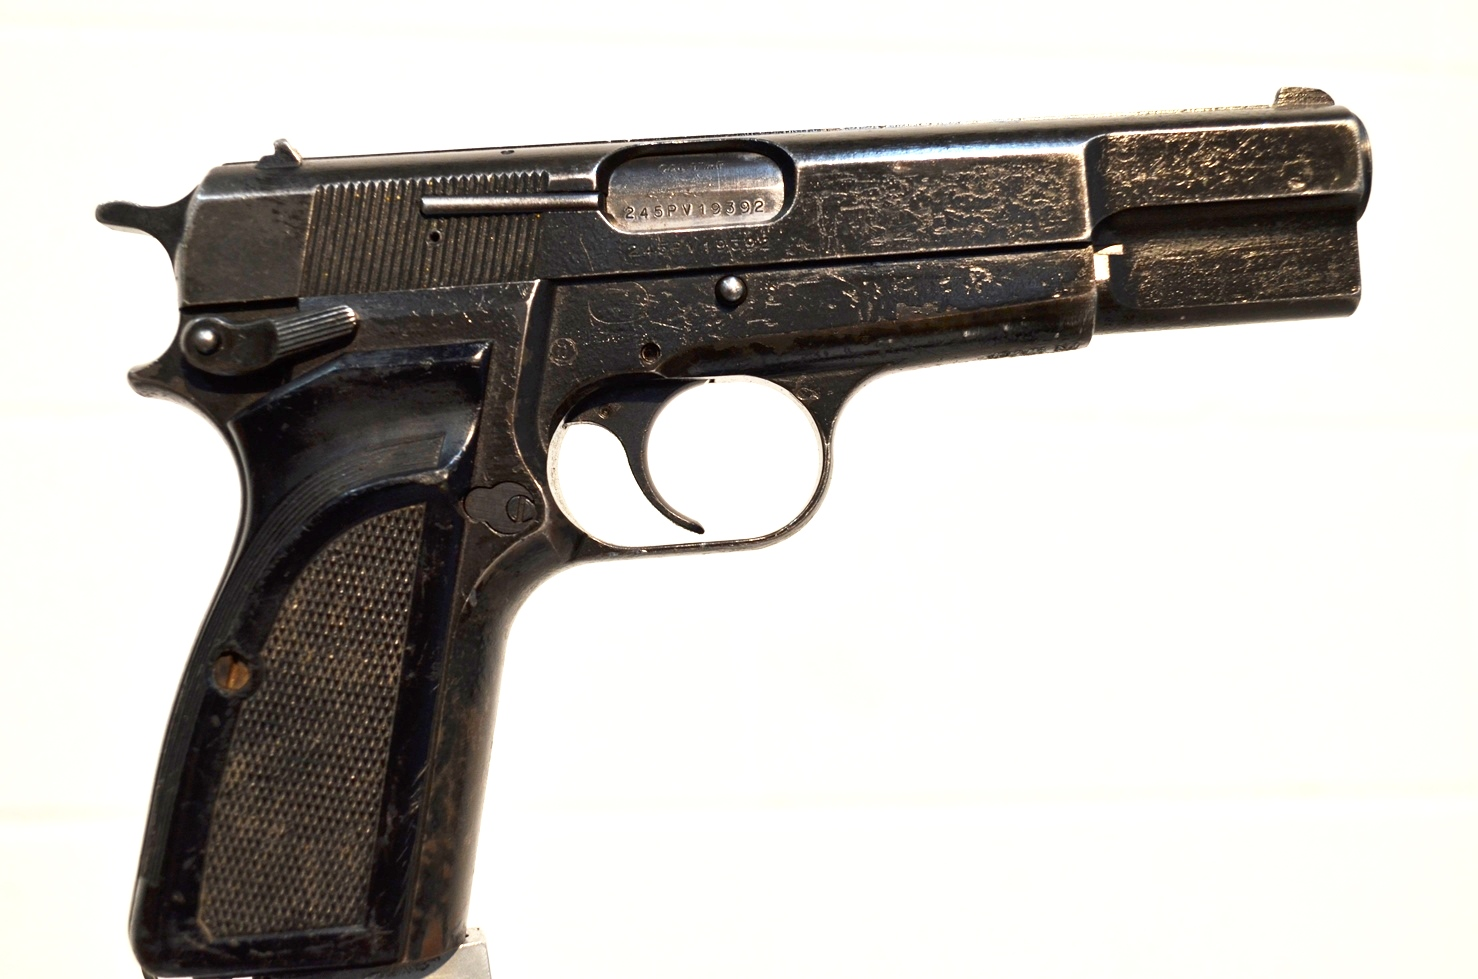 FN Browning Hi Power 9mm Surplus MK-II # 245PV19392